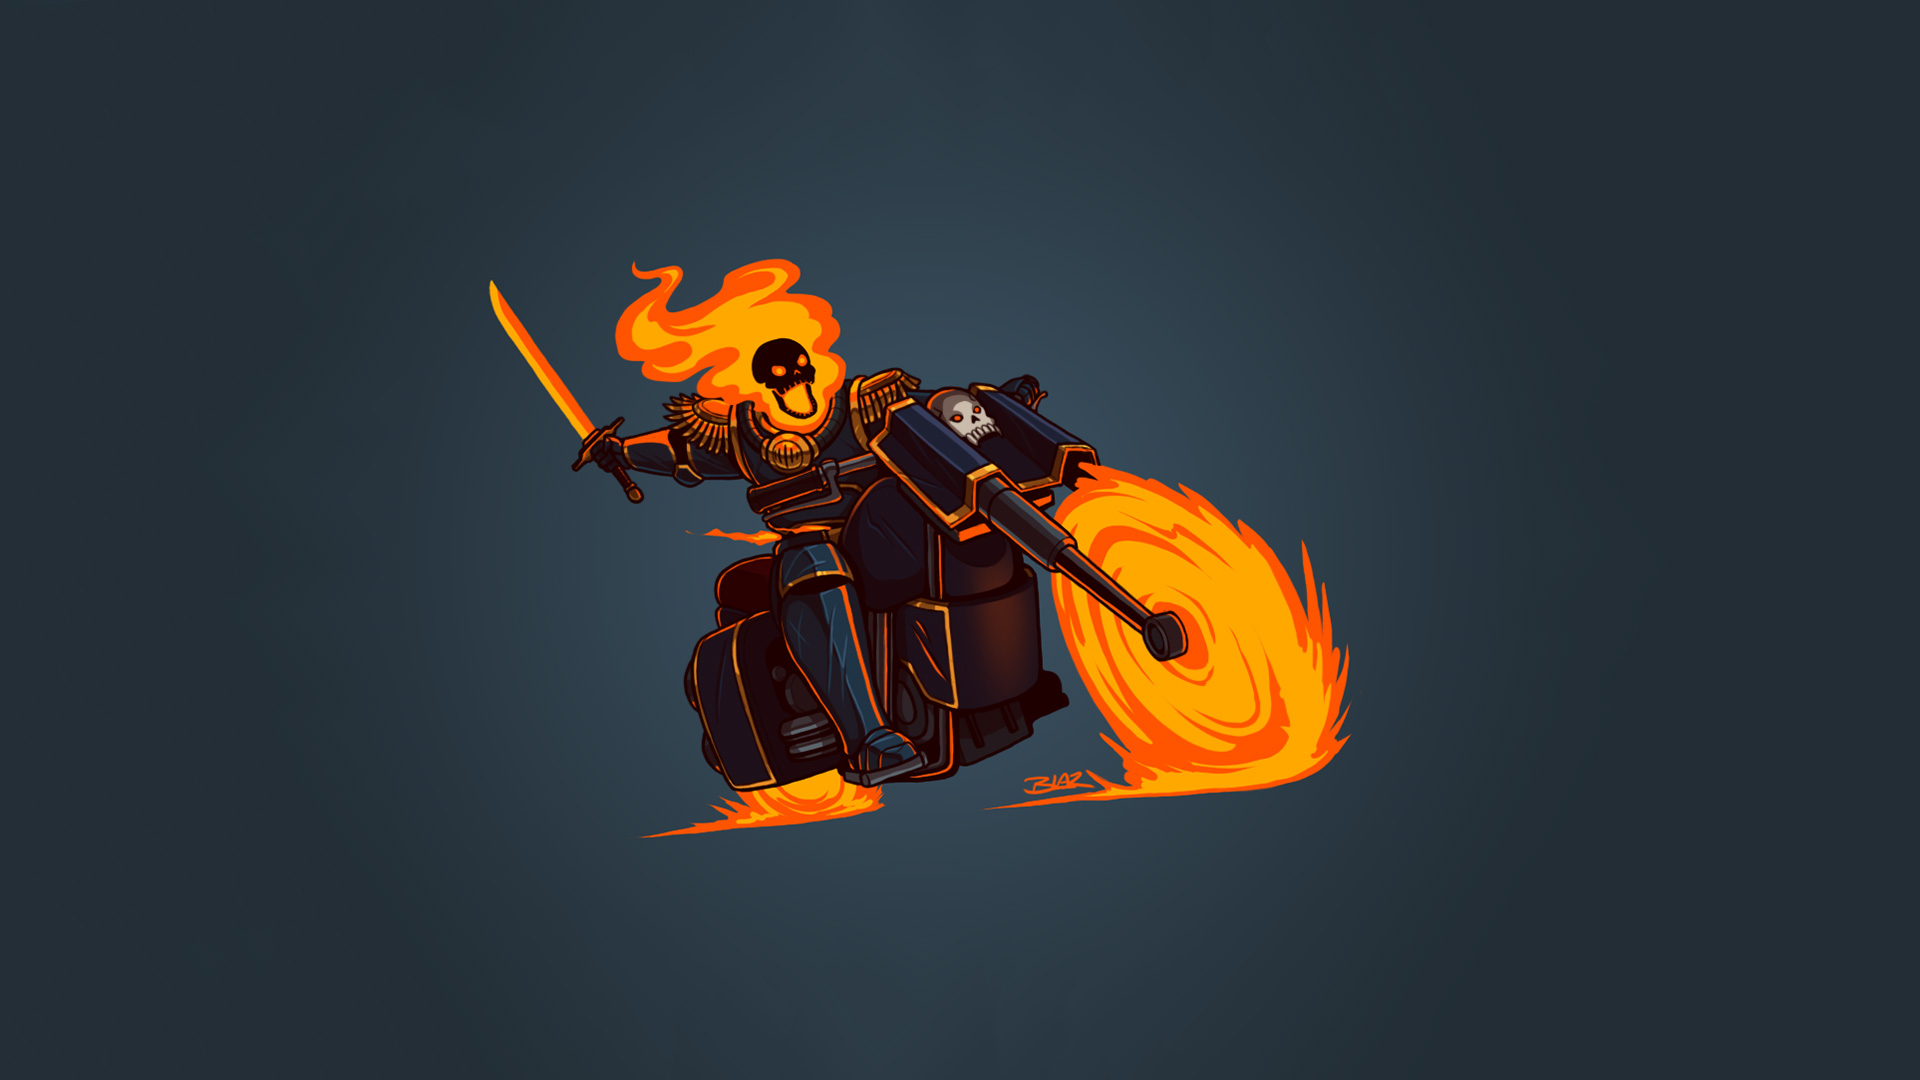 1920x1080 ghost rider minimalism hd laptop full hd 1080p hd 4k